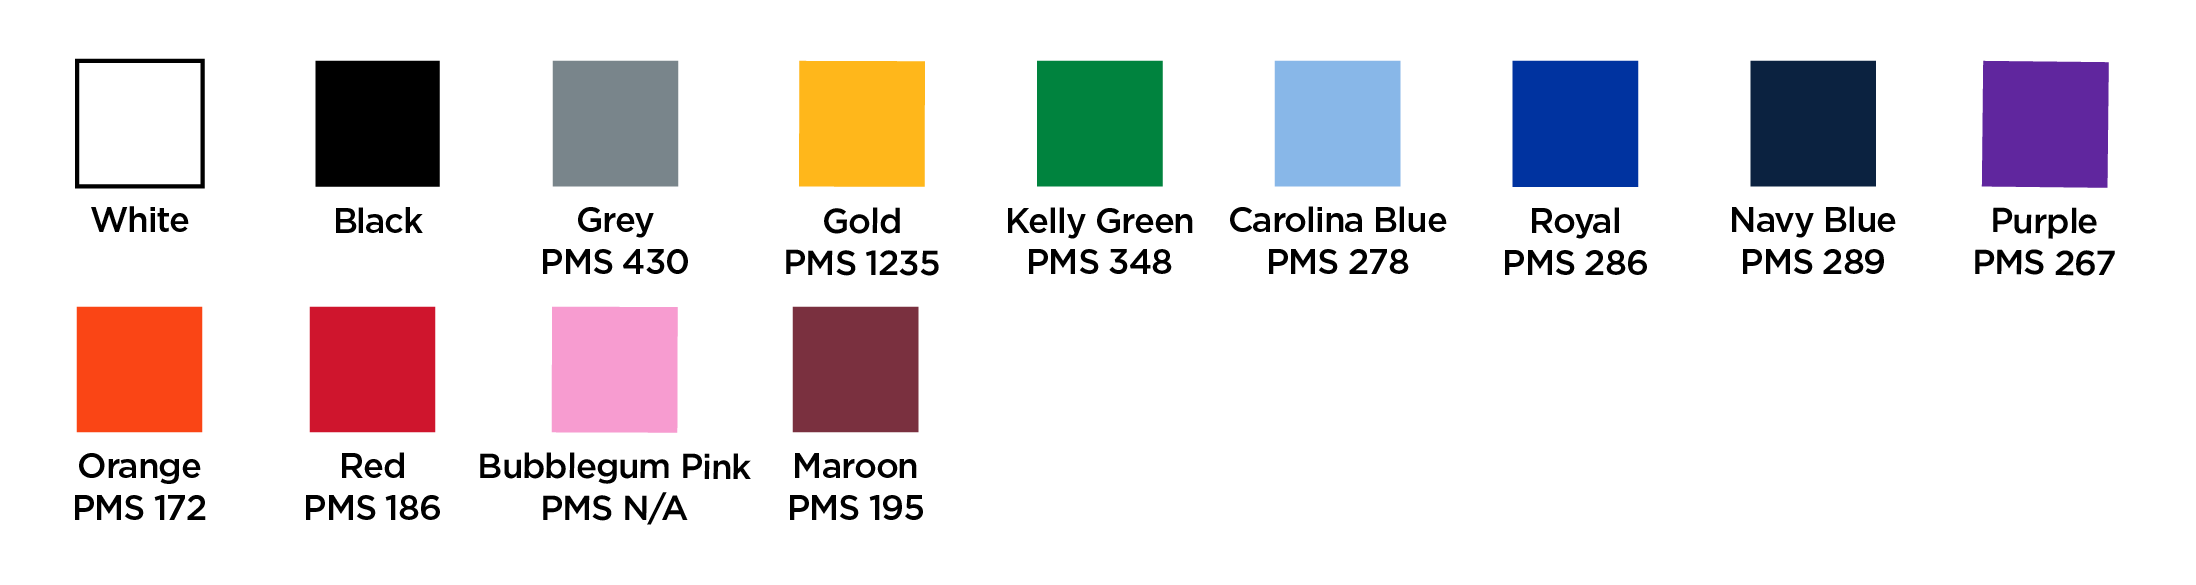 Color Swatch - Master File - 6.22.19-16.png